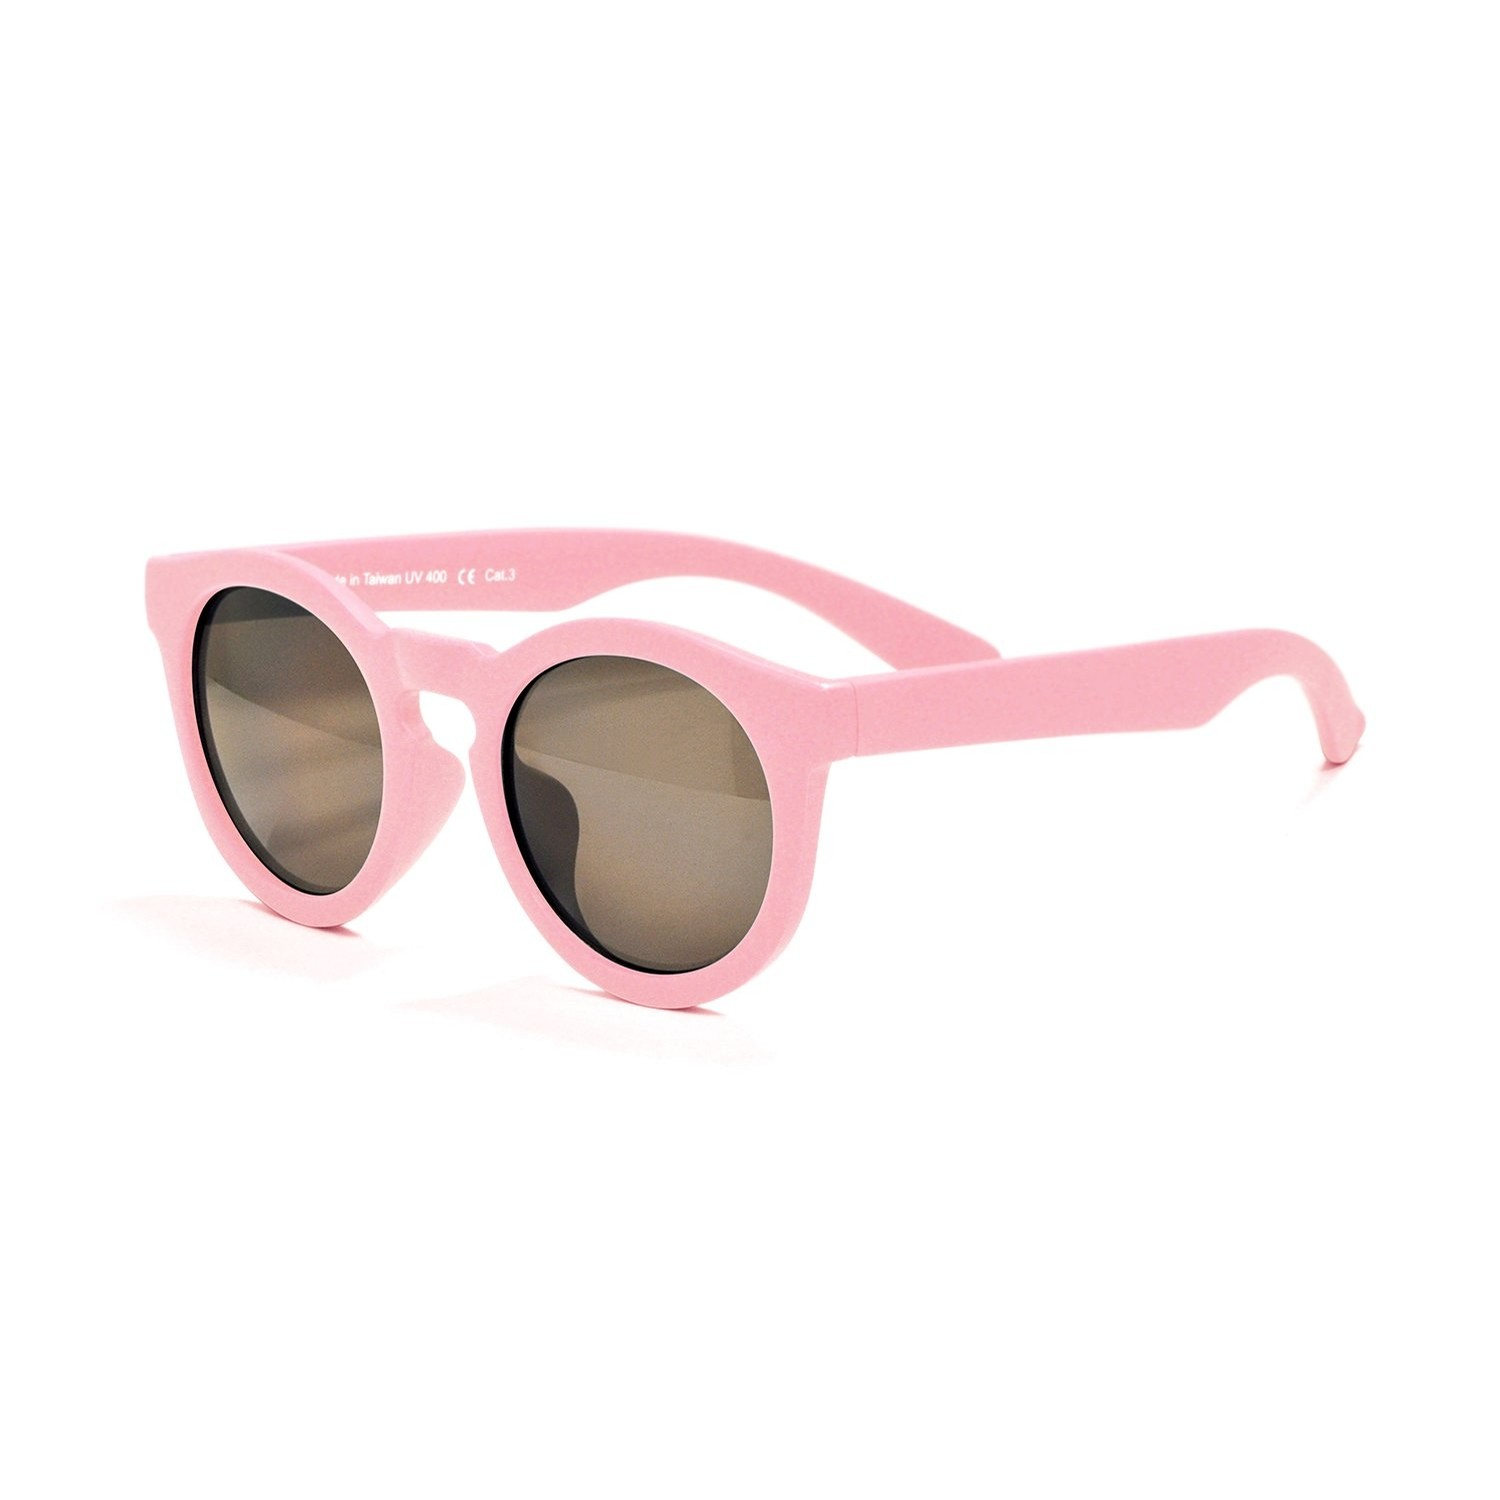 Chill Sunglasses for toddlers 2+